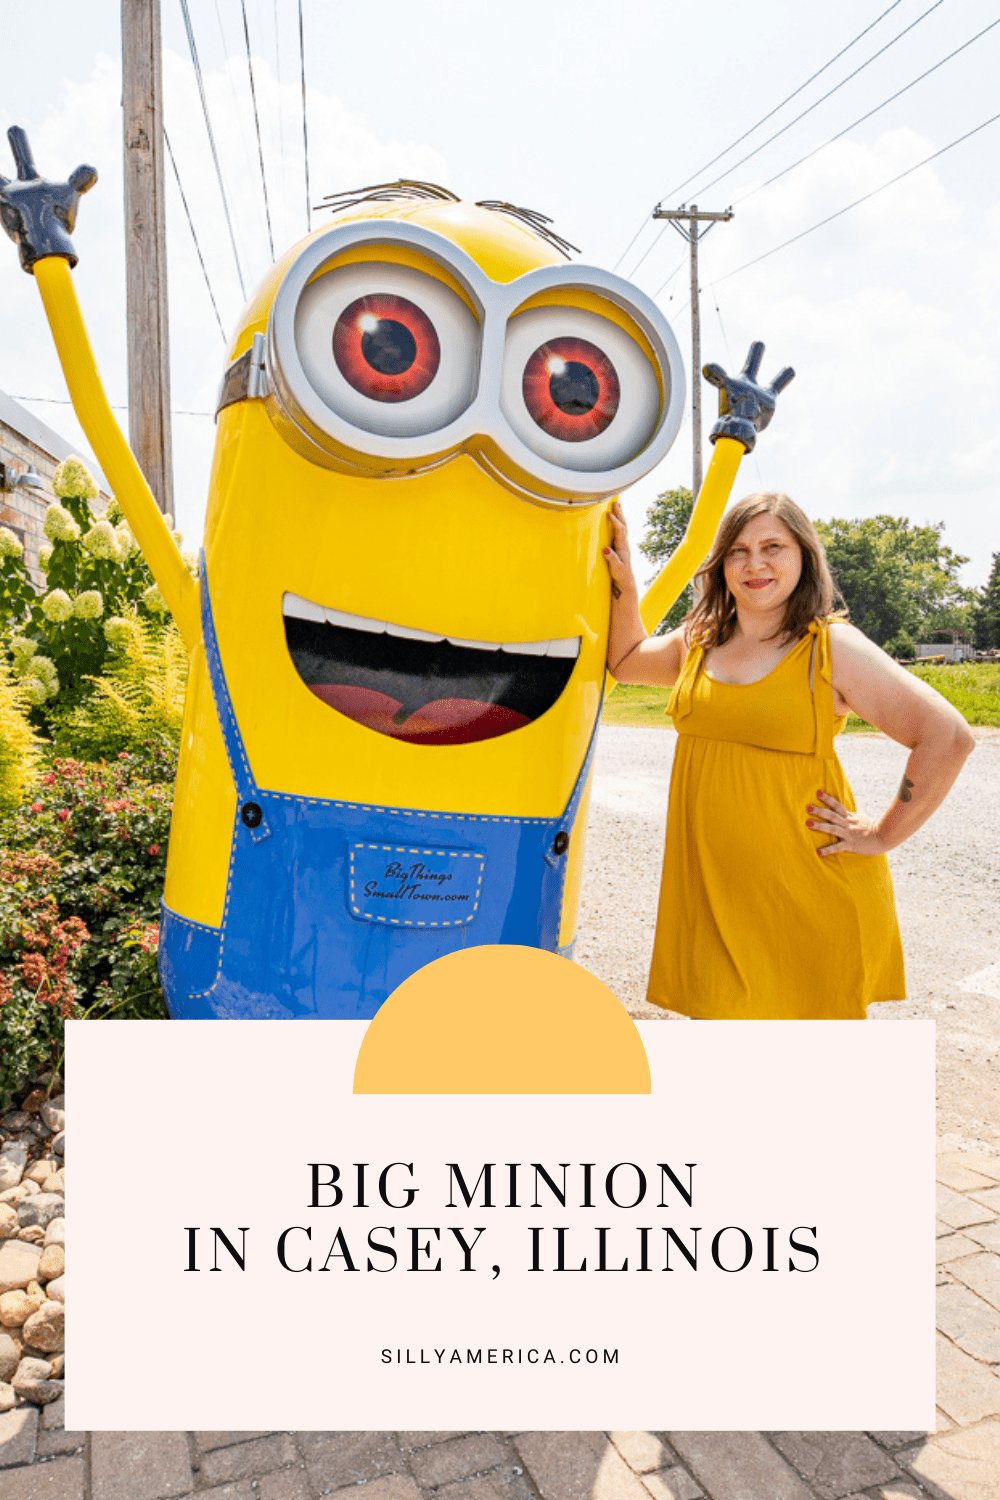 Casey, Illinois is a small town known for its big things. While you're in town exploring the world's largest things be sure to also check out this big Minion!  What is a Minion? They are bright yellow fictional creatures who were made popular by the Despicable Me movie franchise.   #IllinoisRoadsideAttractions #IllinoisRoadsideAttraction #RoadsideAttractions #RoadsideAttraction #RoadTrip #IllinoisRoadTrip #IllinoisWeekendGetaways #IllinoisWithKids #IllinoisRoadTripTravel